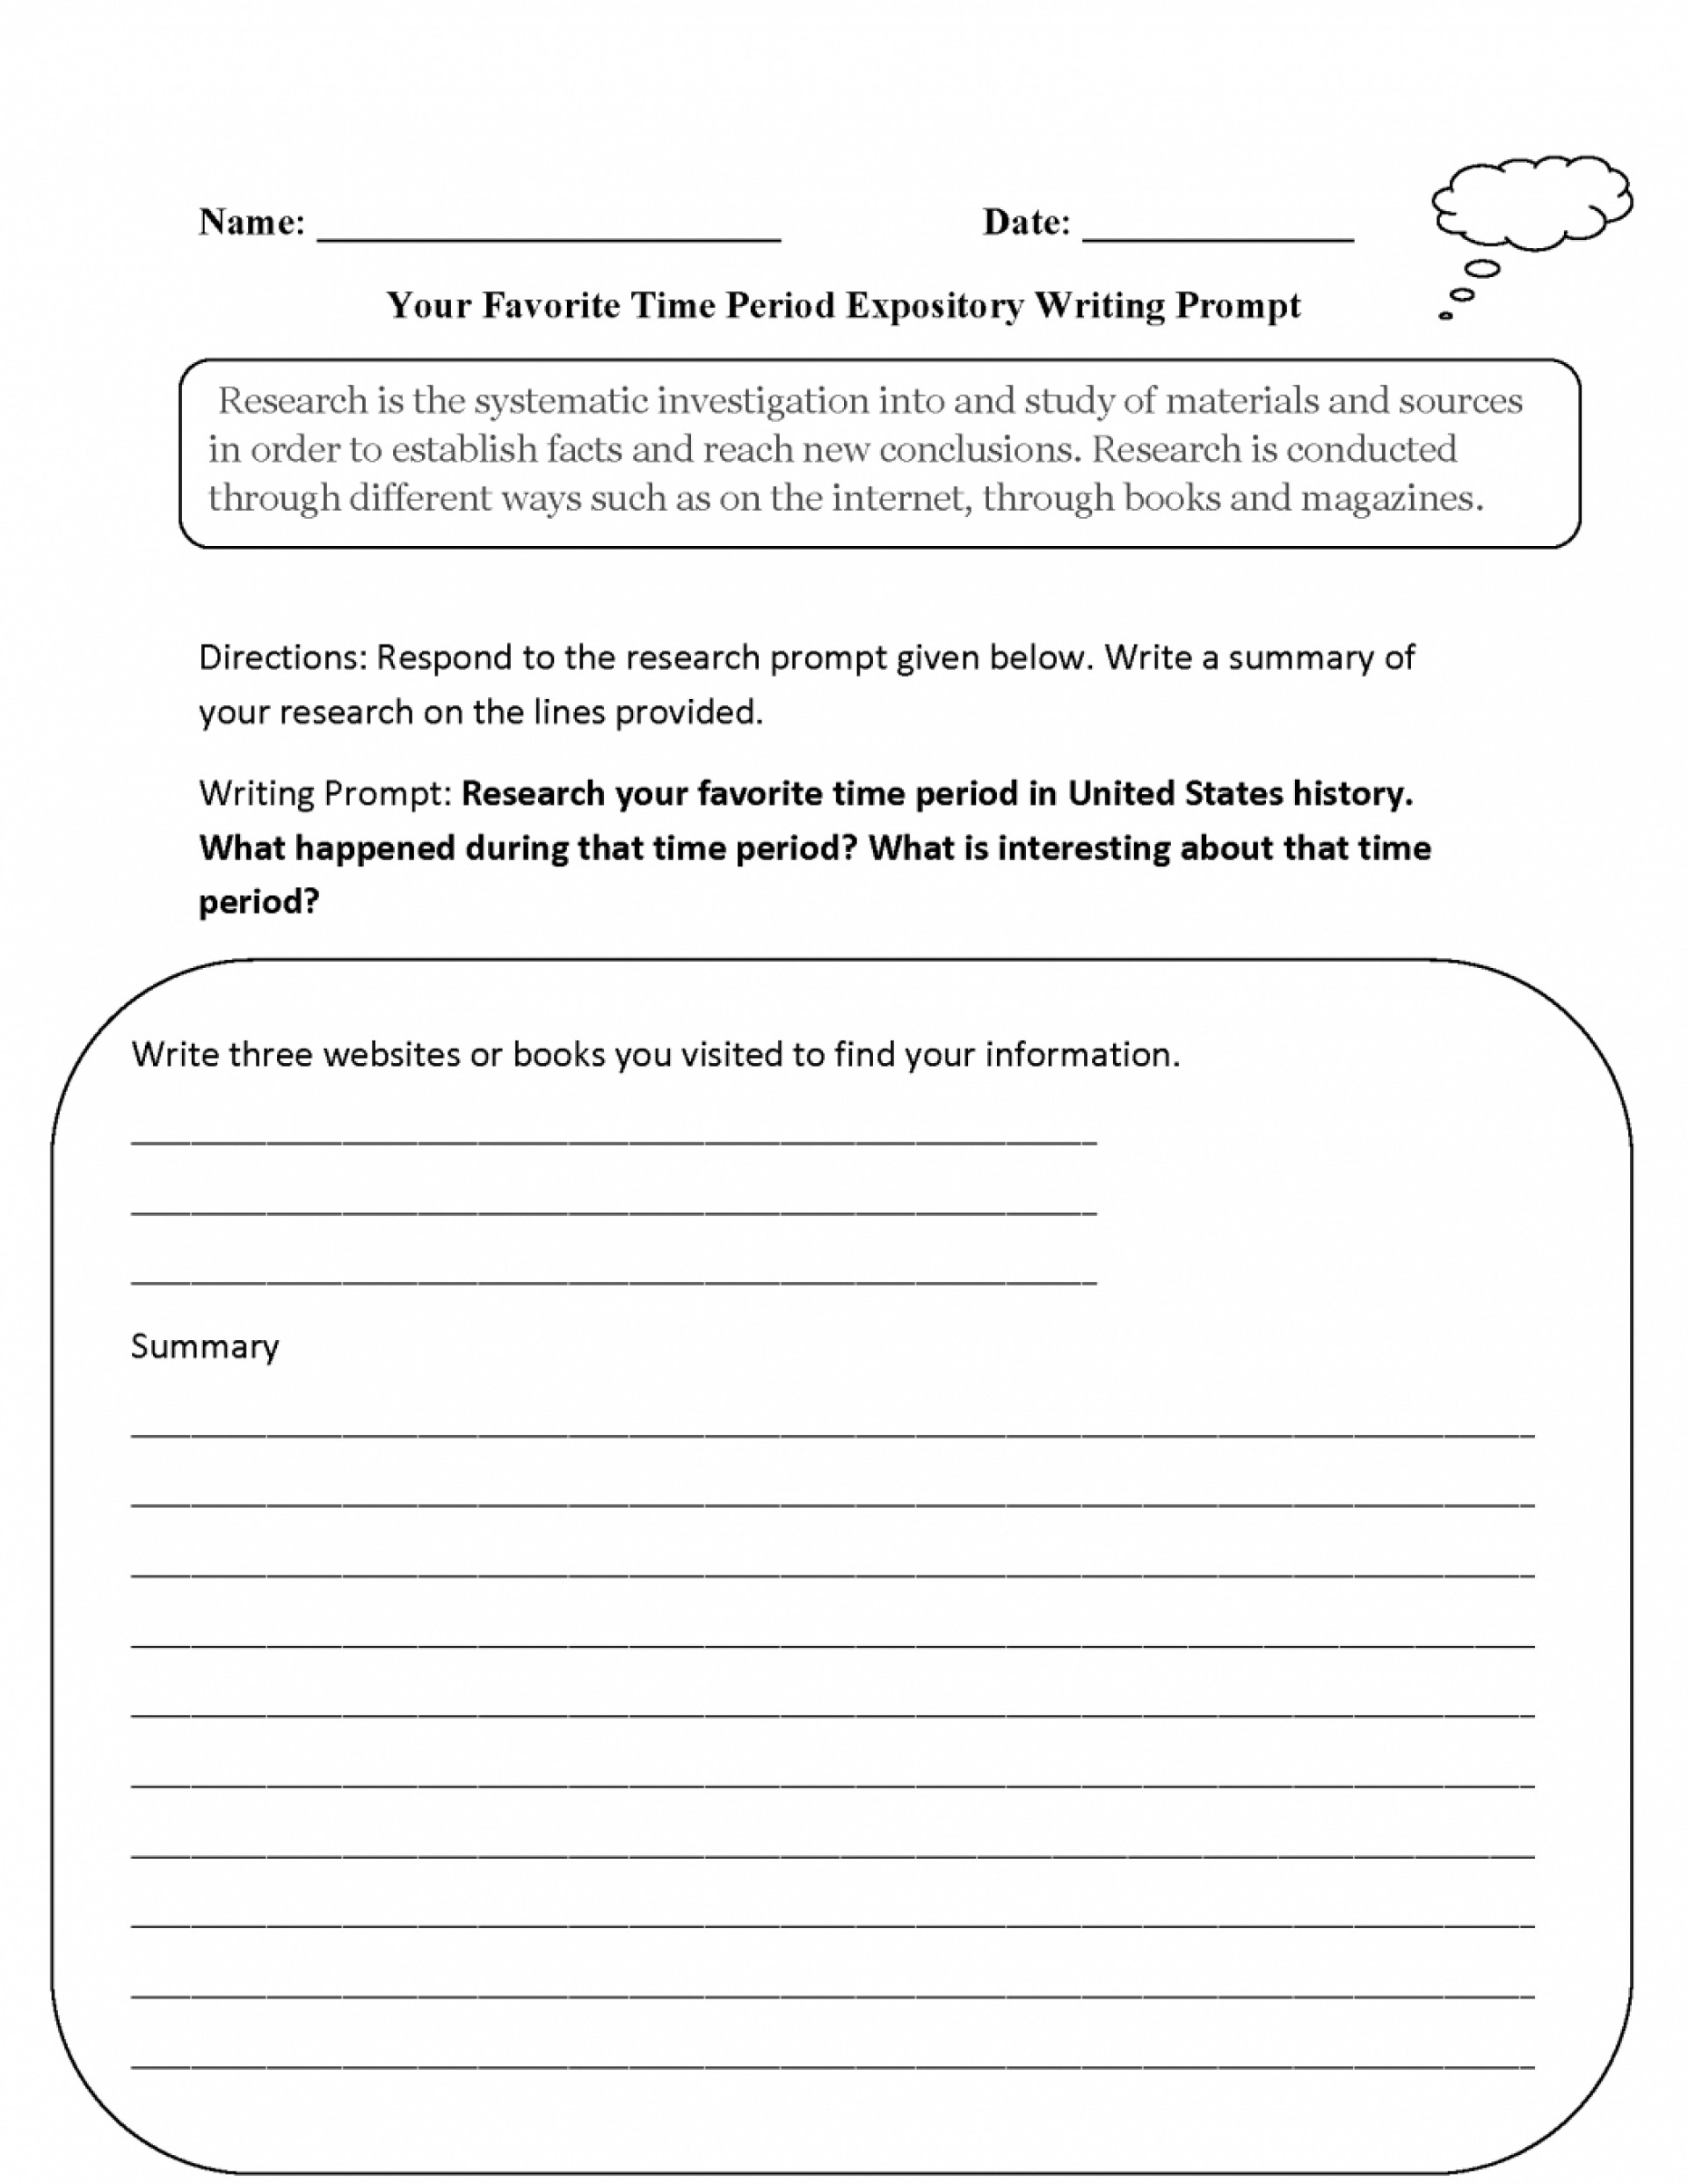 018 Essay Example Good Informative Topics Prompts Favorite Time Period Expository Writing P To Write An On The Topic Of Immigration Remarkable For 4th Grade High School 6th Graders 1920